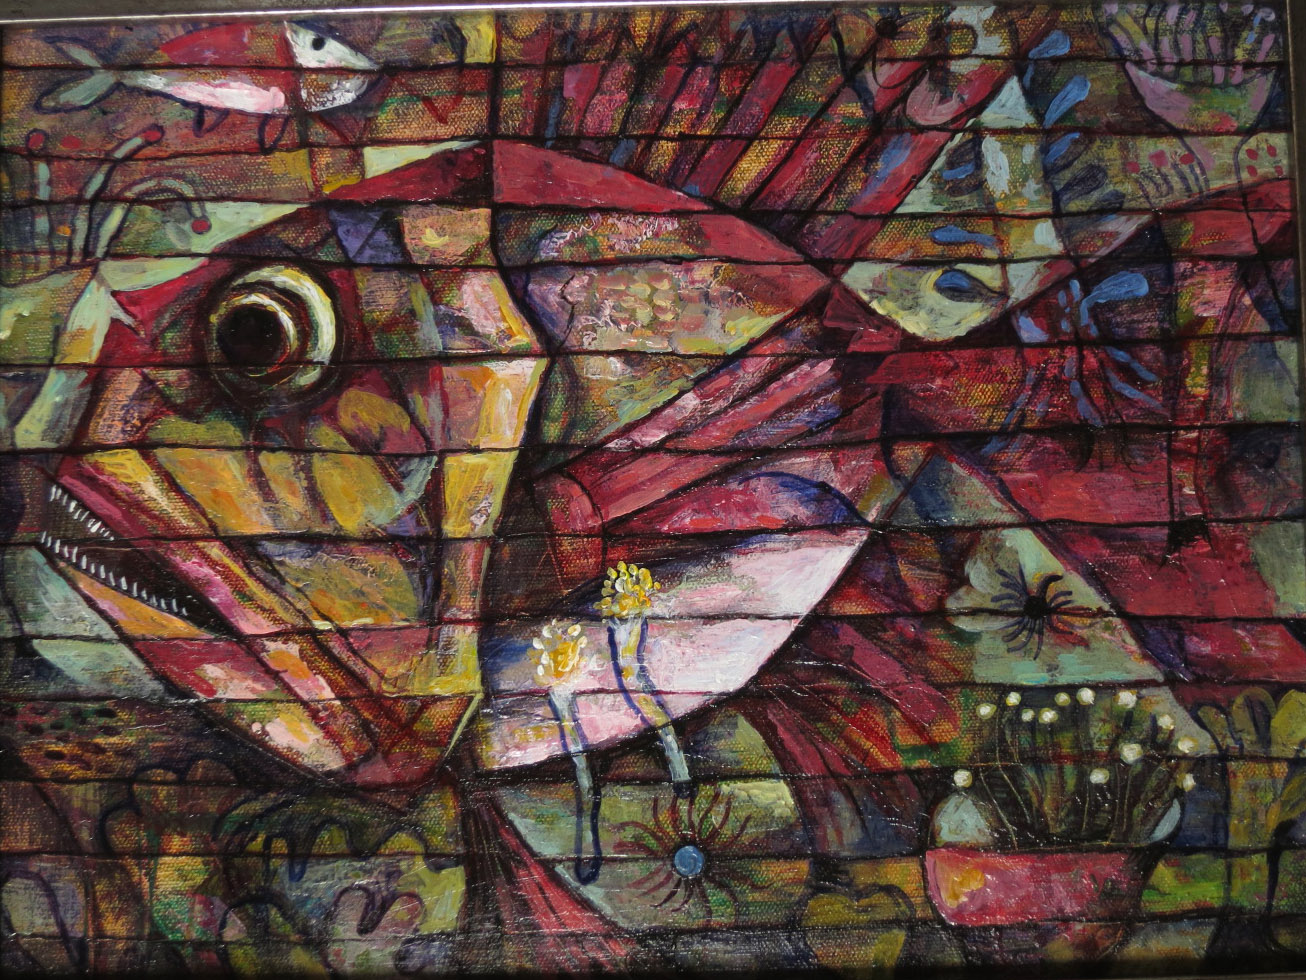 14-fish-no5-2013-40-5x30-5cm-canvas-500